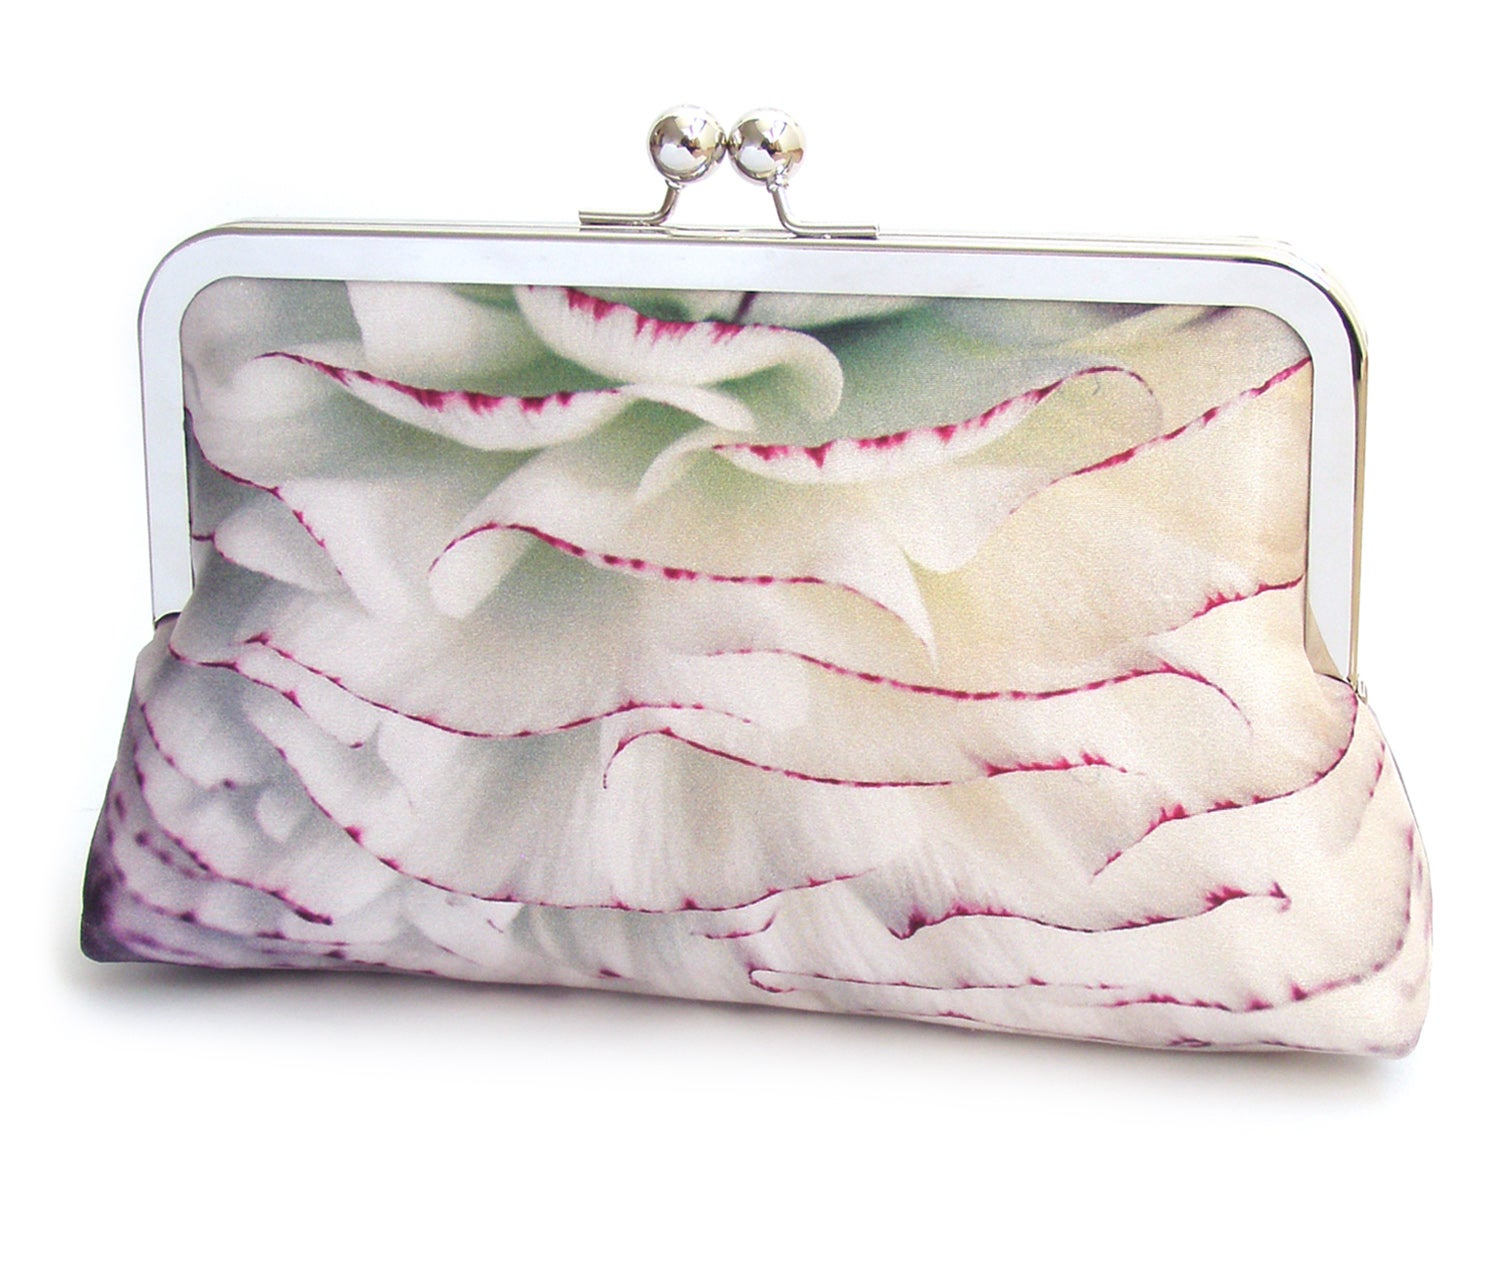 Image of PomPom petals clutch bag, silk purse, frilly ranunculus flower